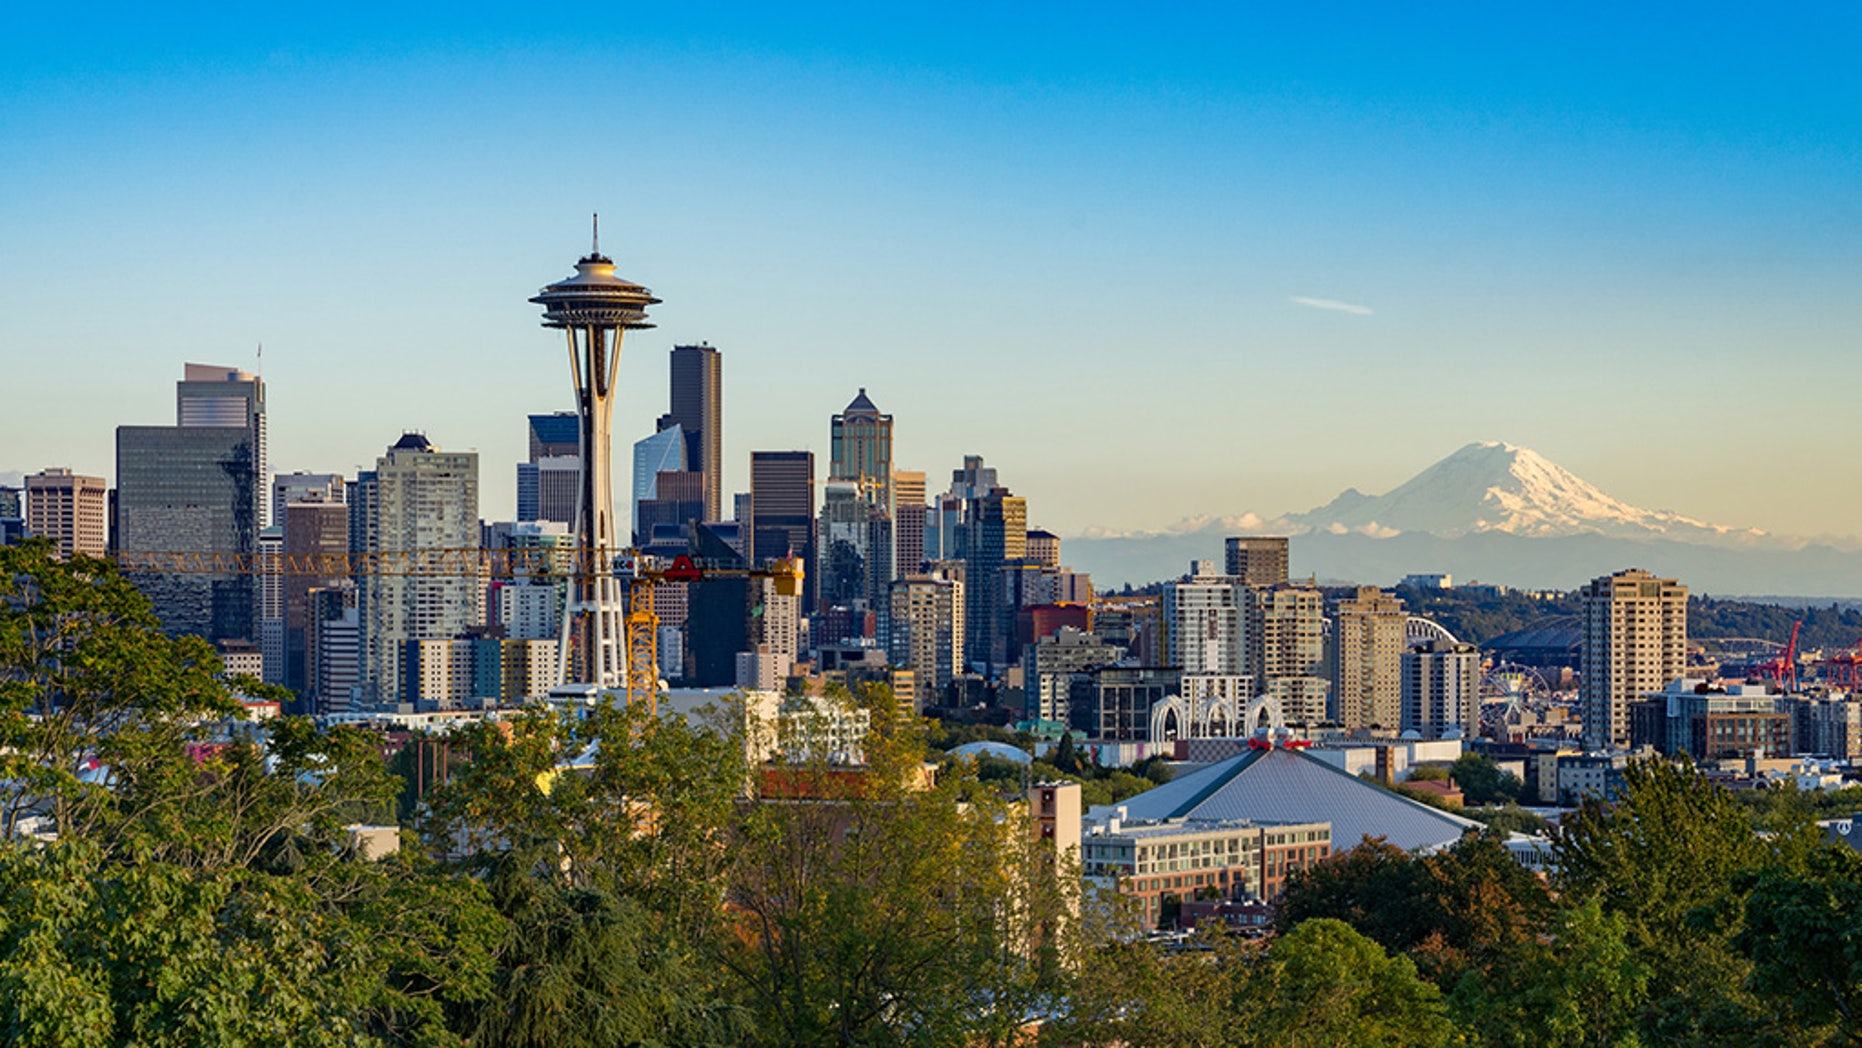 The city of Seattle with Mount Rainier behind the cityscape.